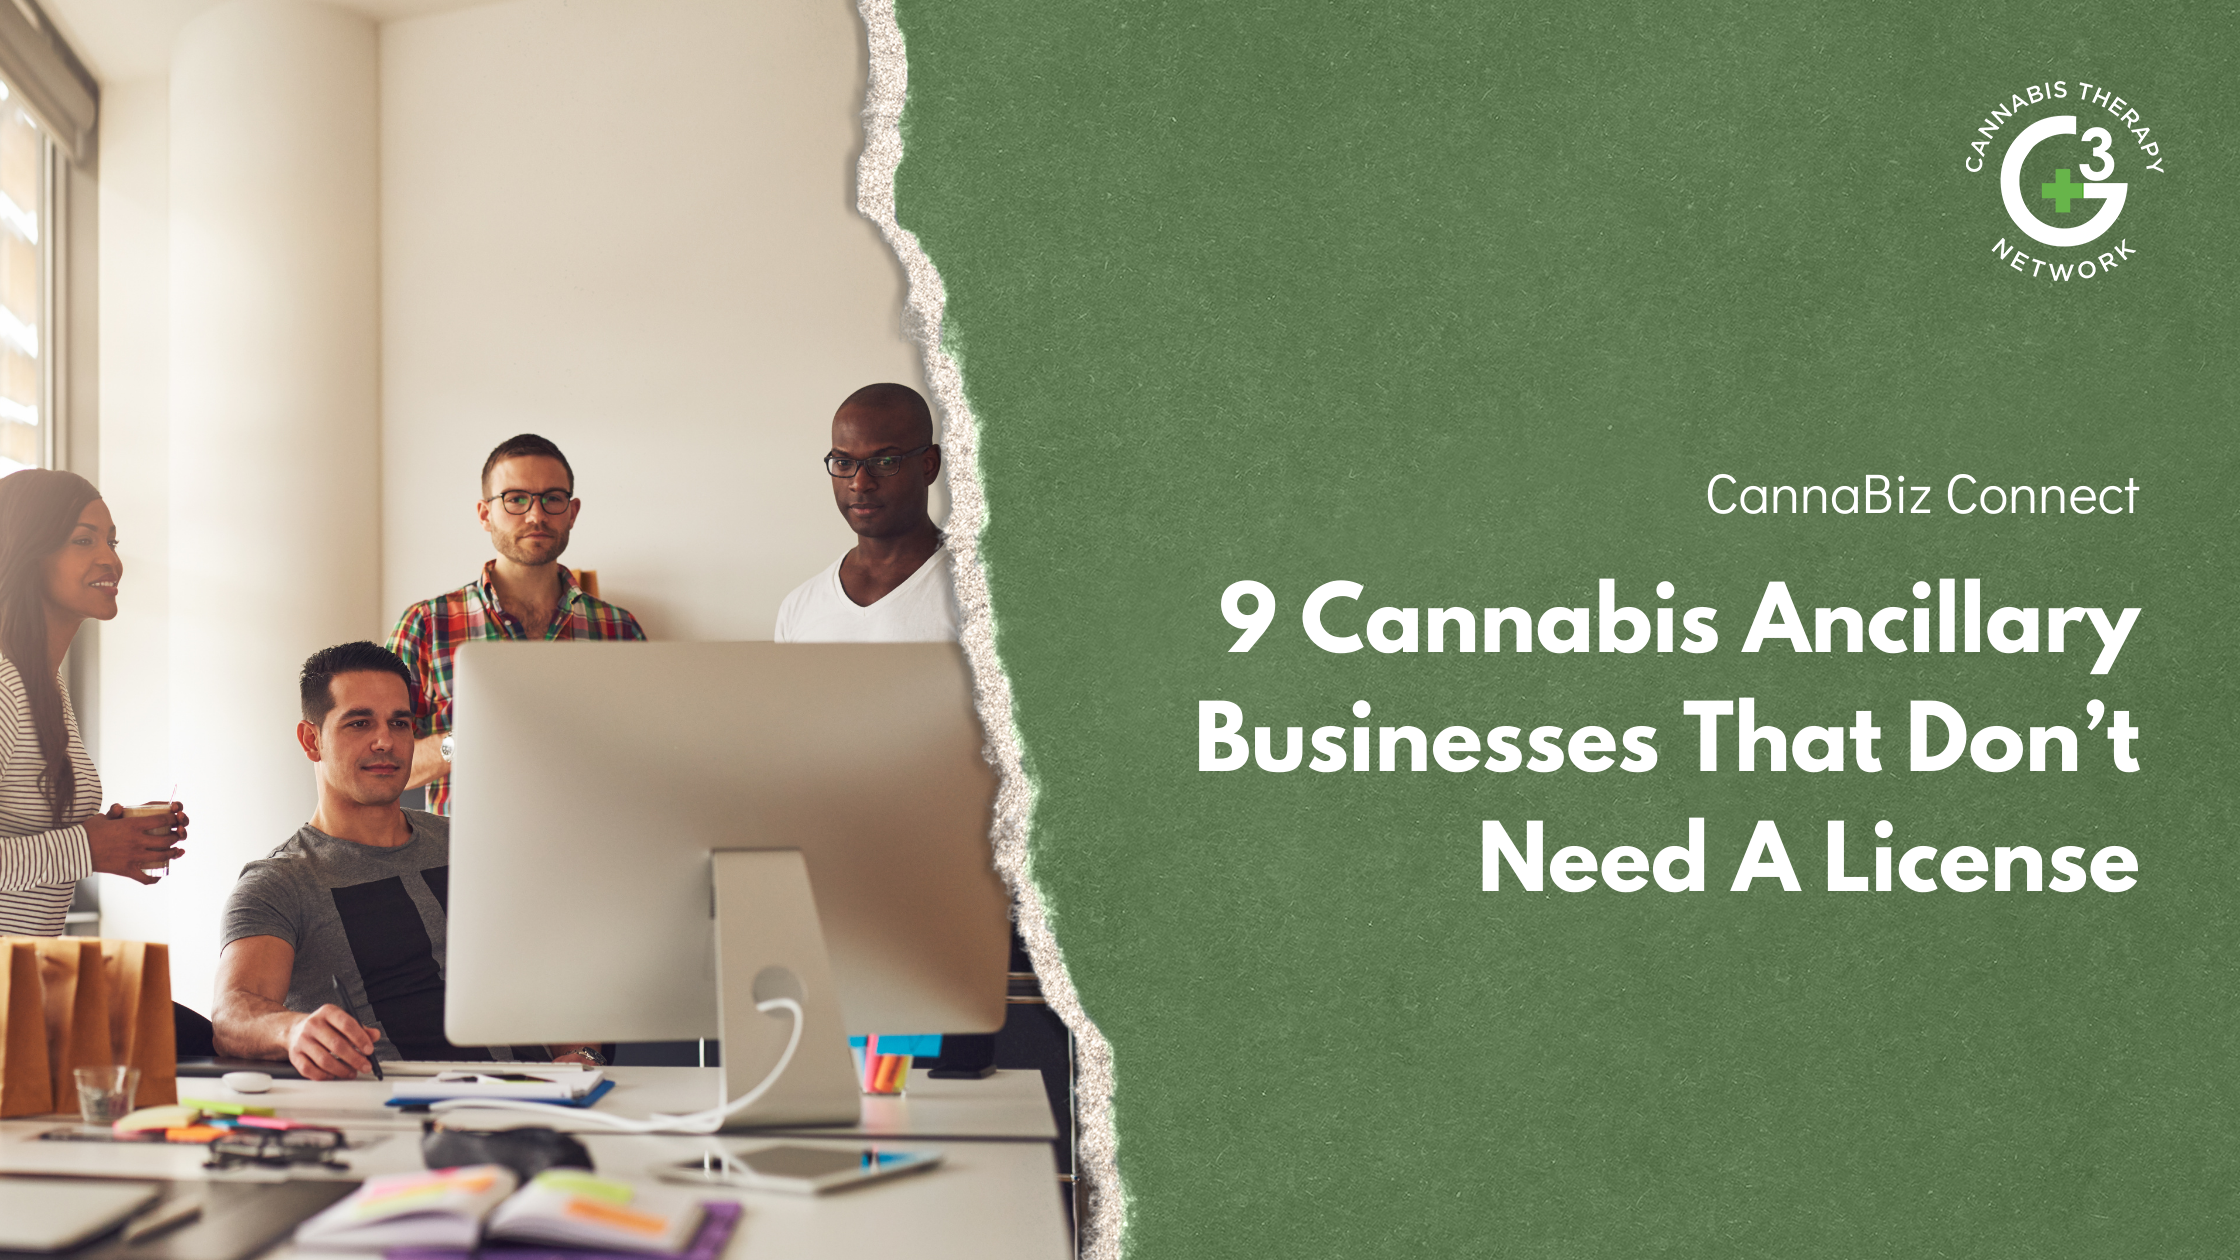 9 Cannabis Ancillary Businesses That Don't Need A License